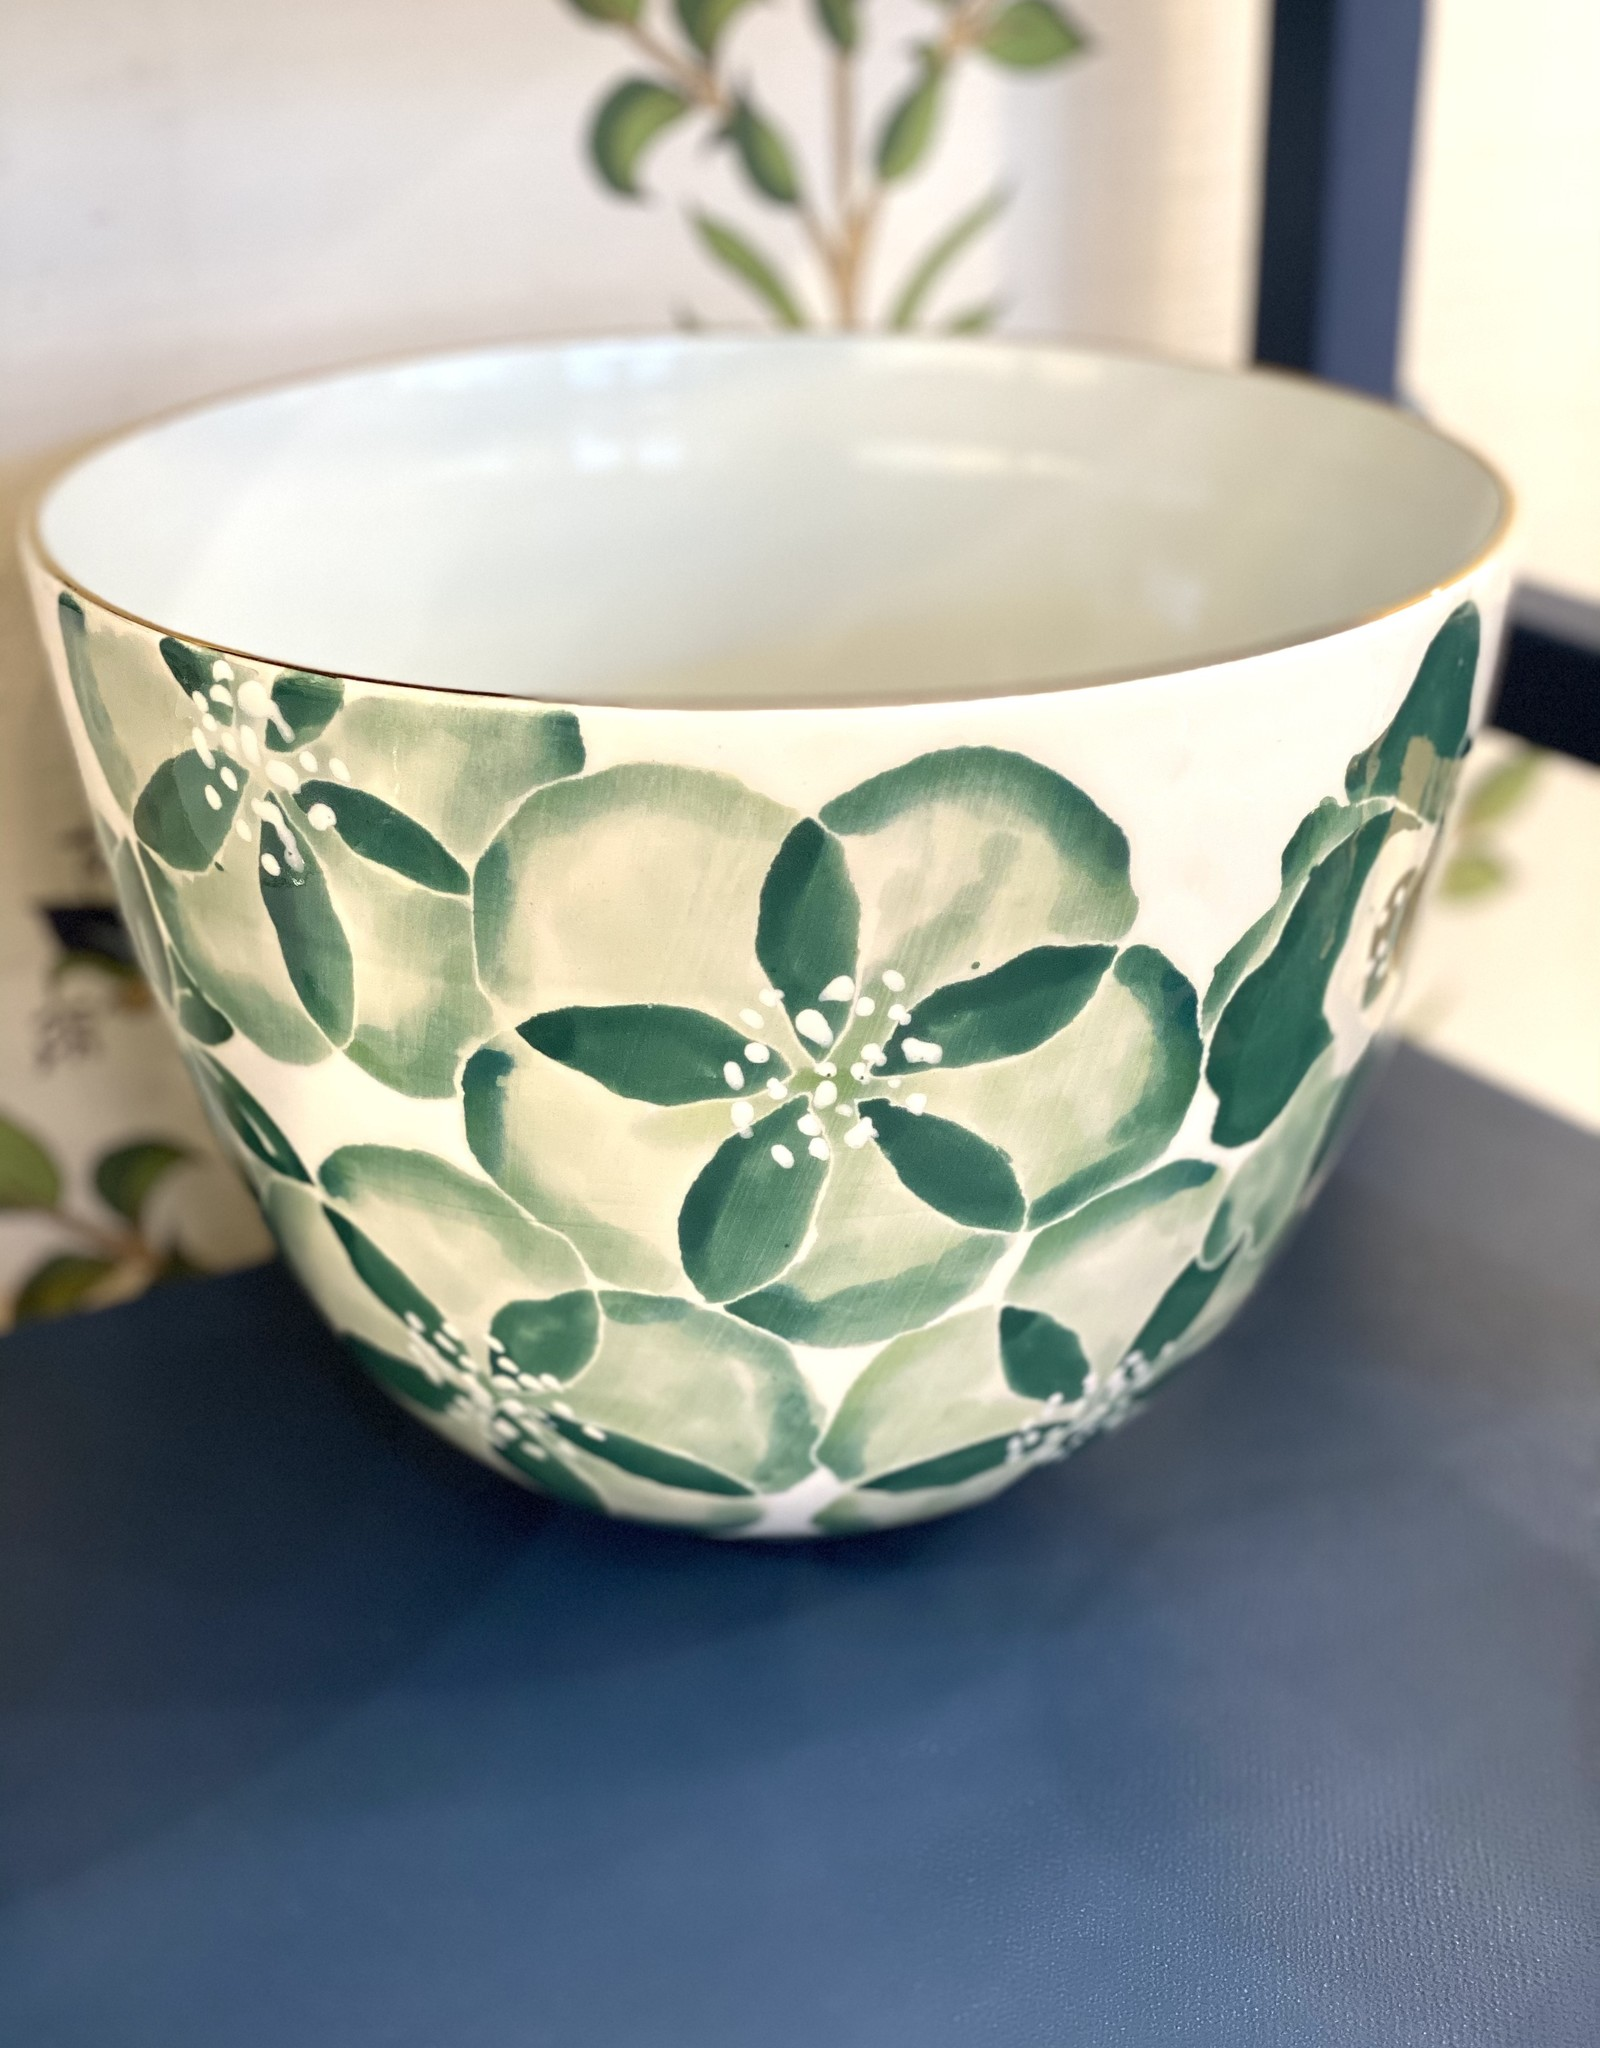 Jill Rosenwald Medium Bee Bowl - Pripet/Peacock